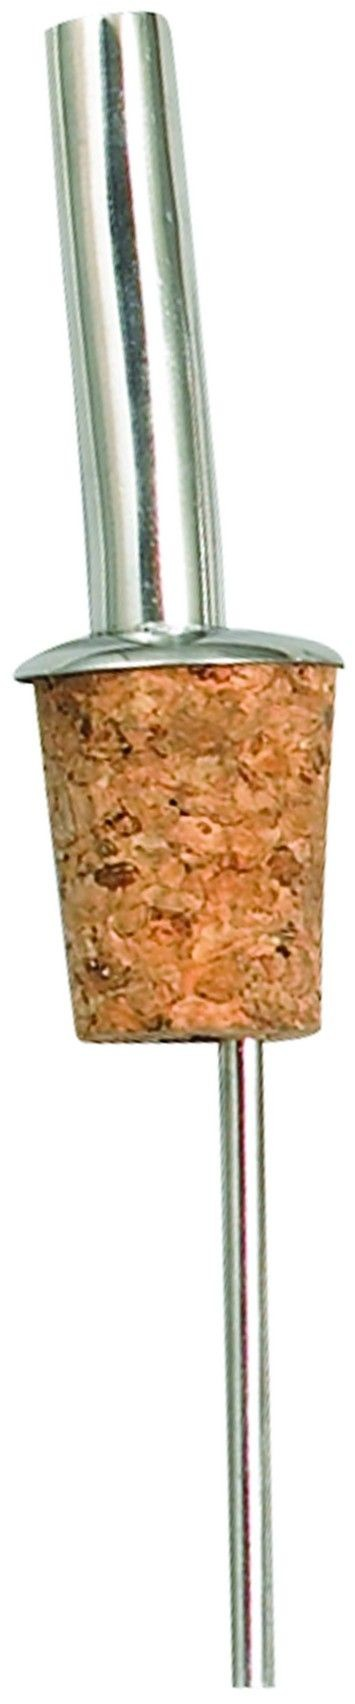 Winco PPM-5J Liquor Pourer with Jet Spout and Natural Cork